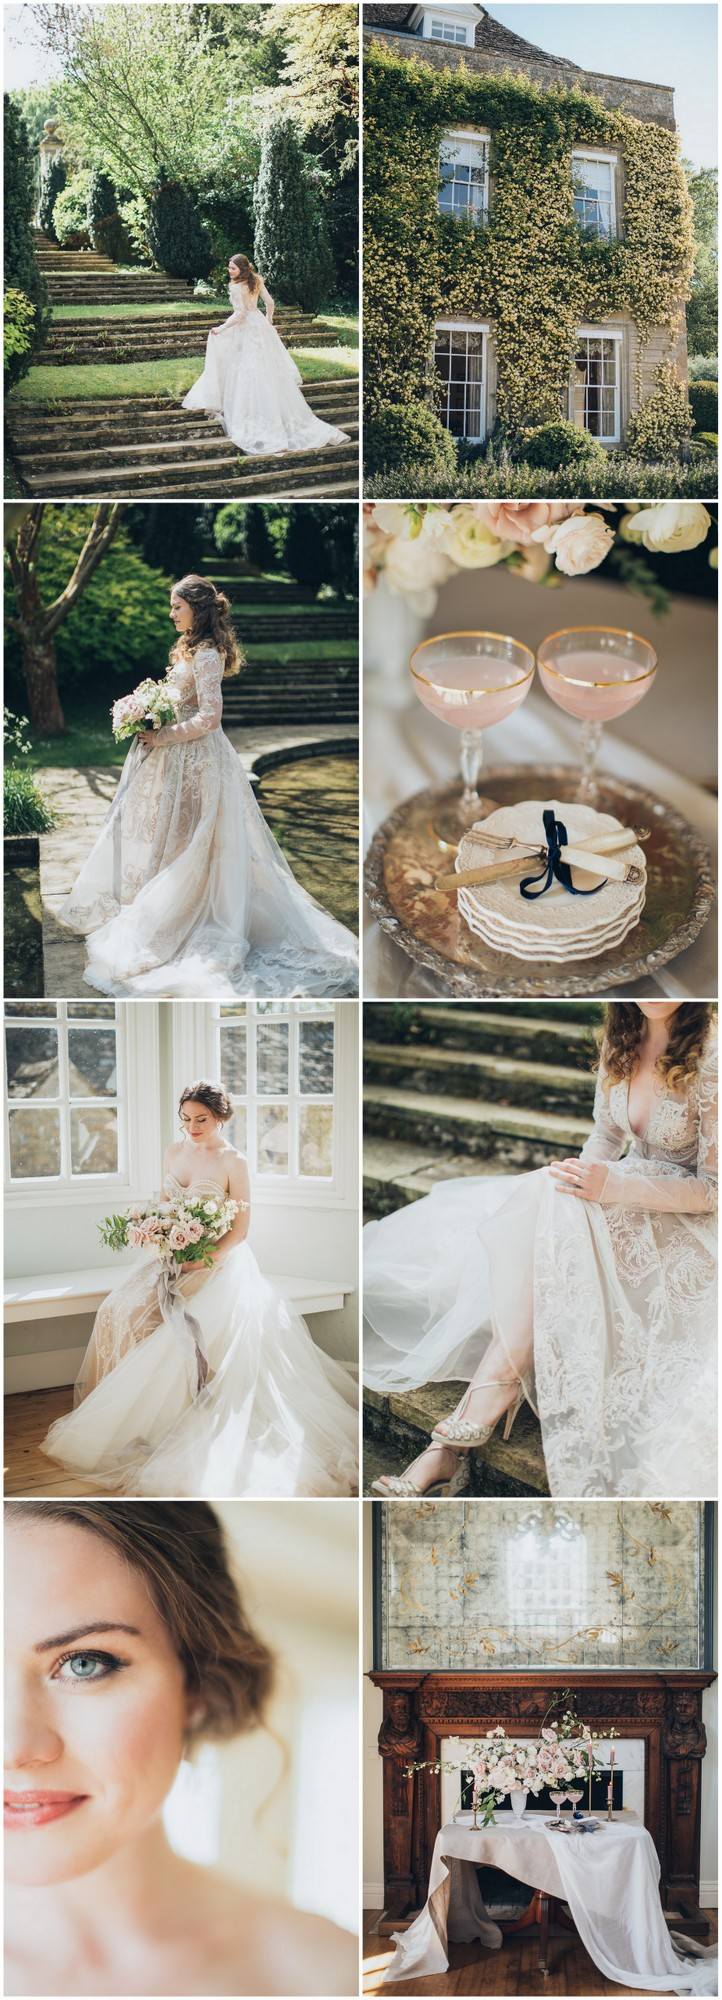 Plan an Intimate Elopement Cornwell English Countryside